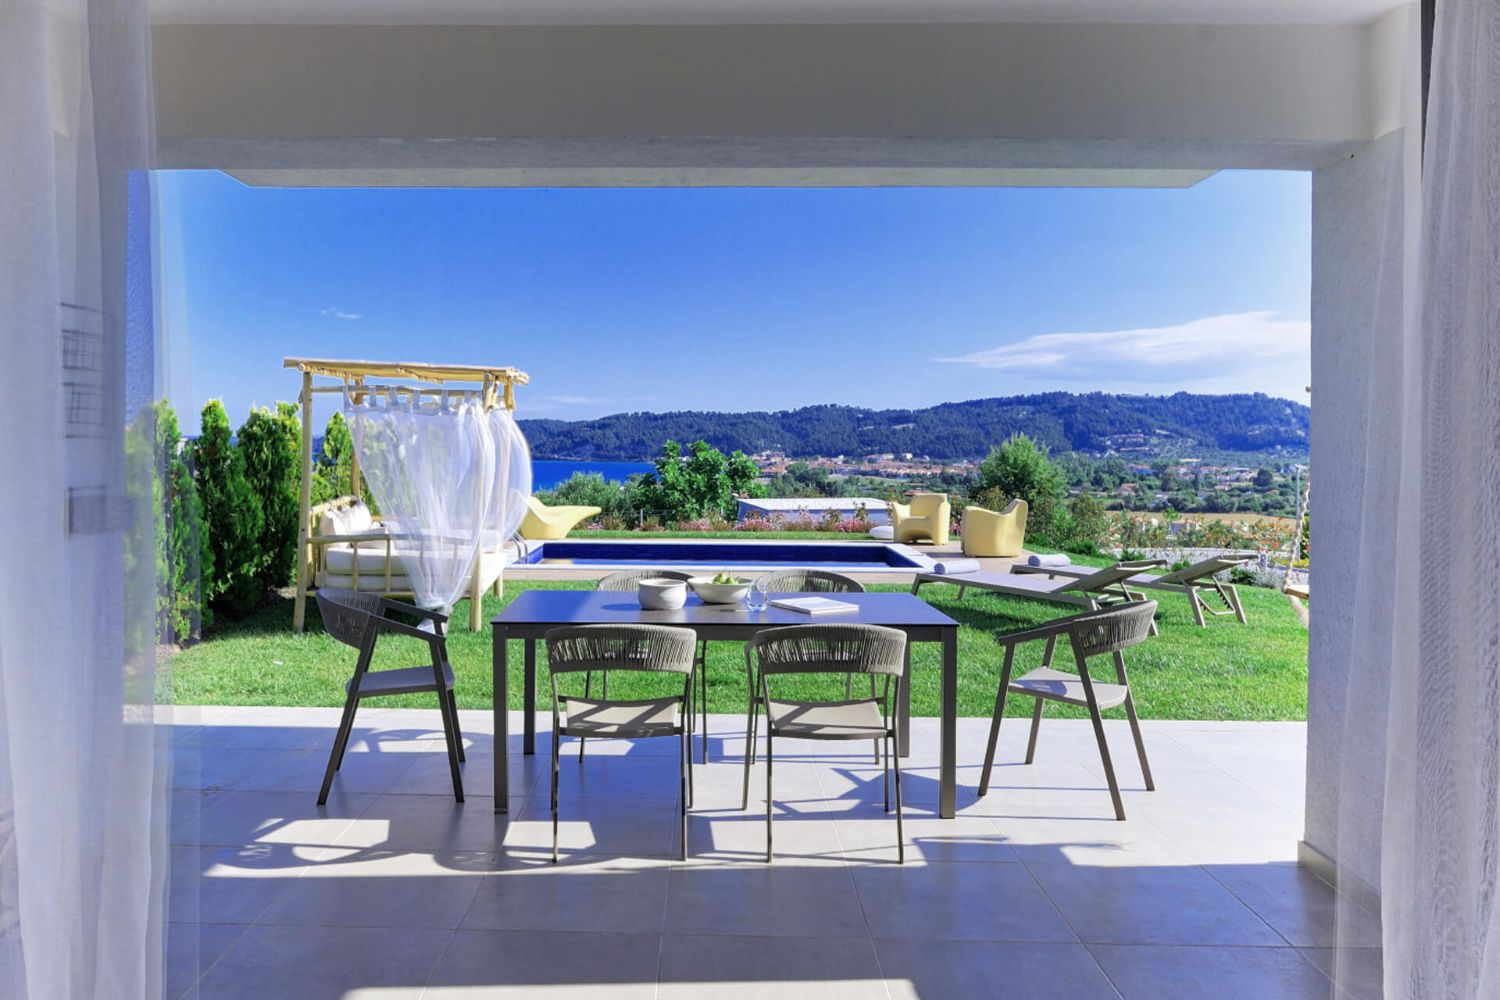 Outdoor dining area and view